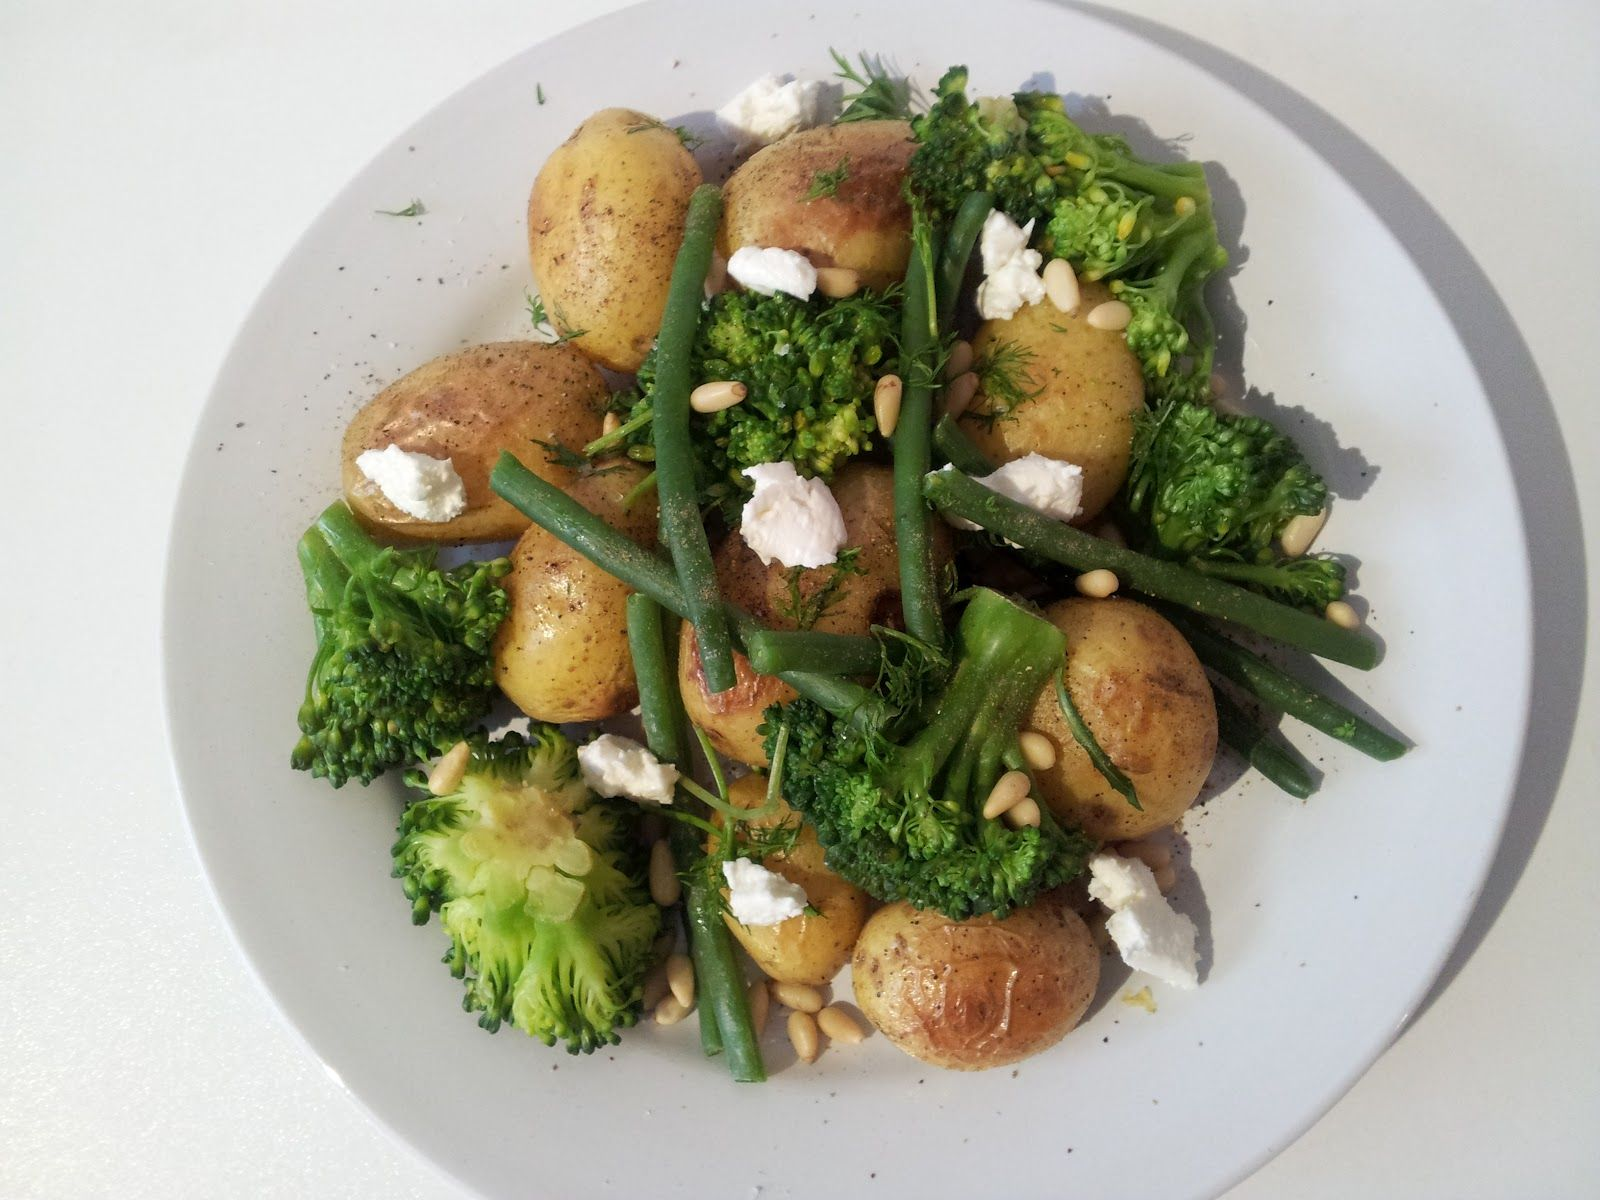 Lemony Potato, Broccoli, and Goat Cheese Salad- substitute asparagus for the green beans, and we're good to go.